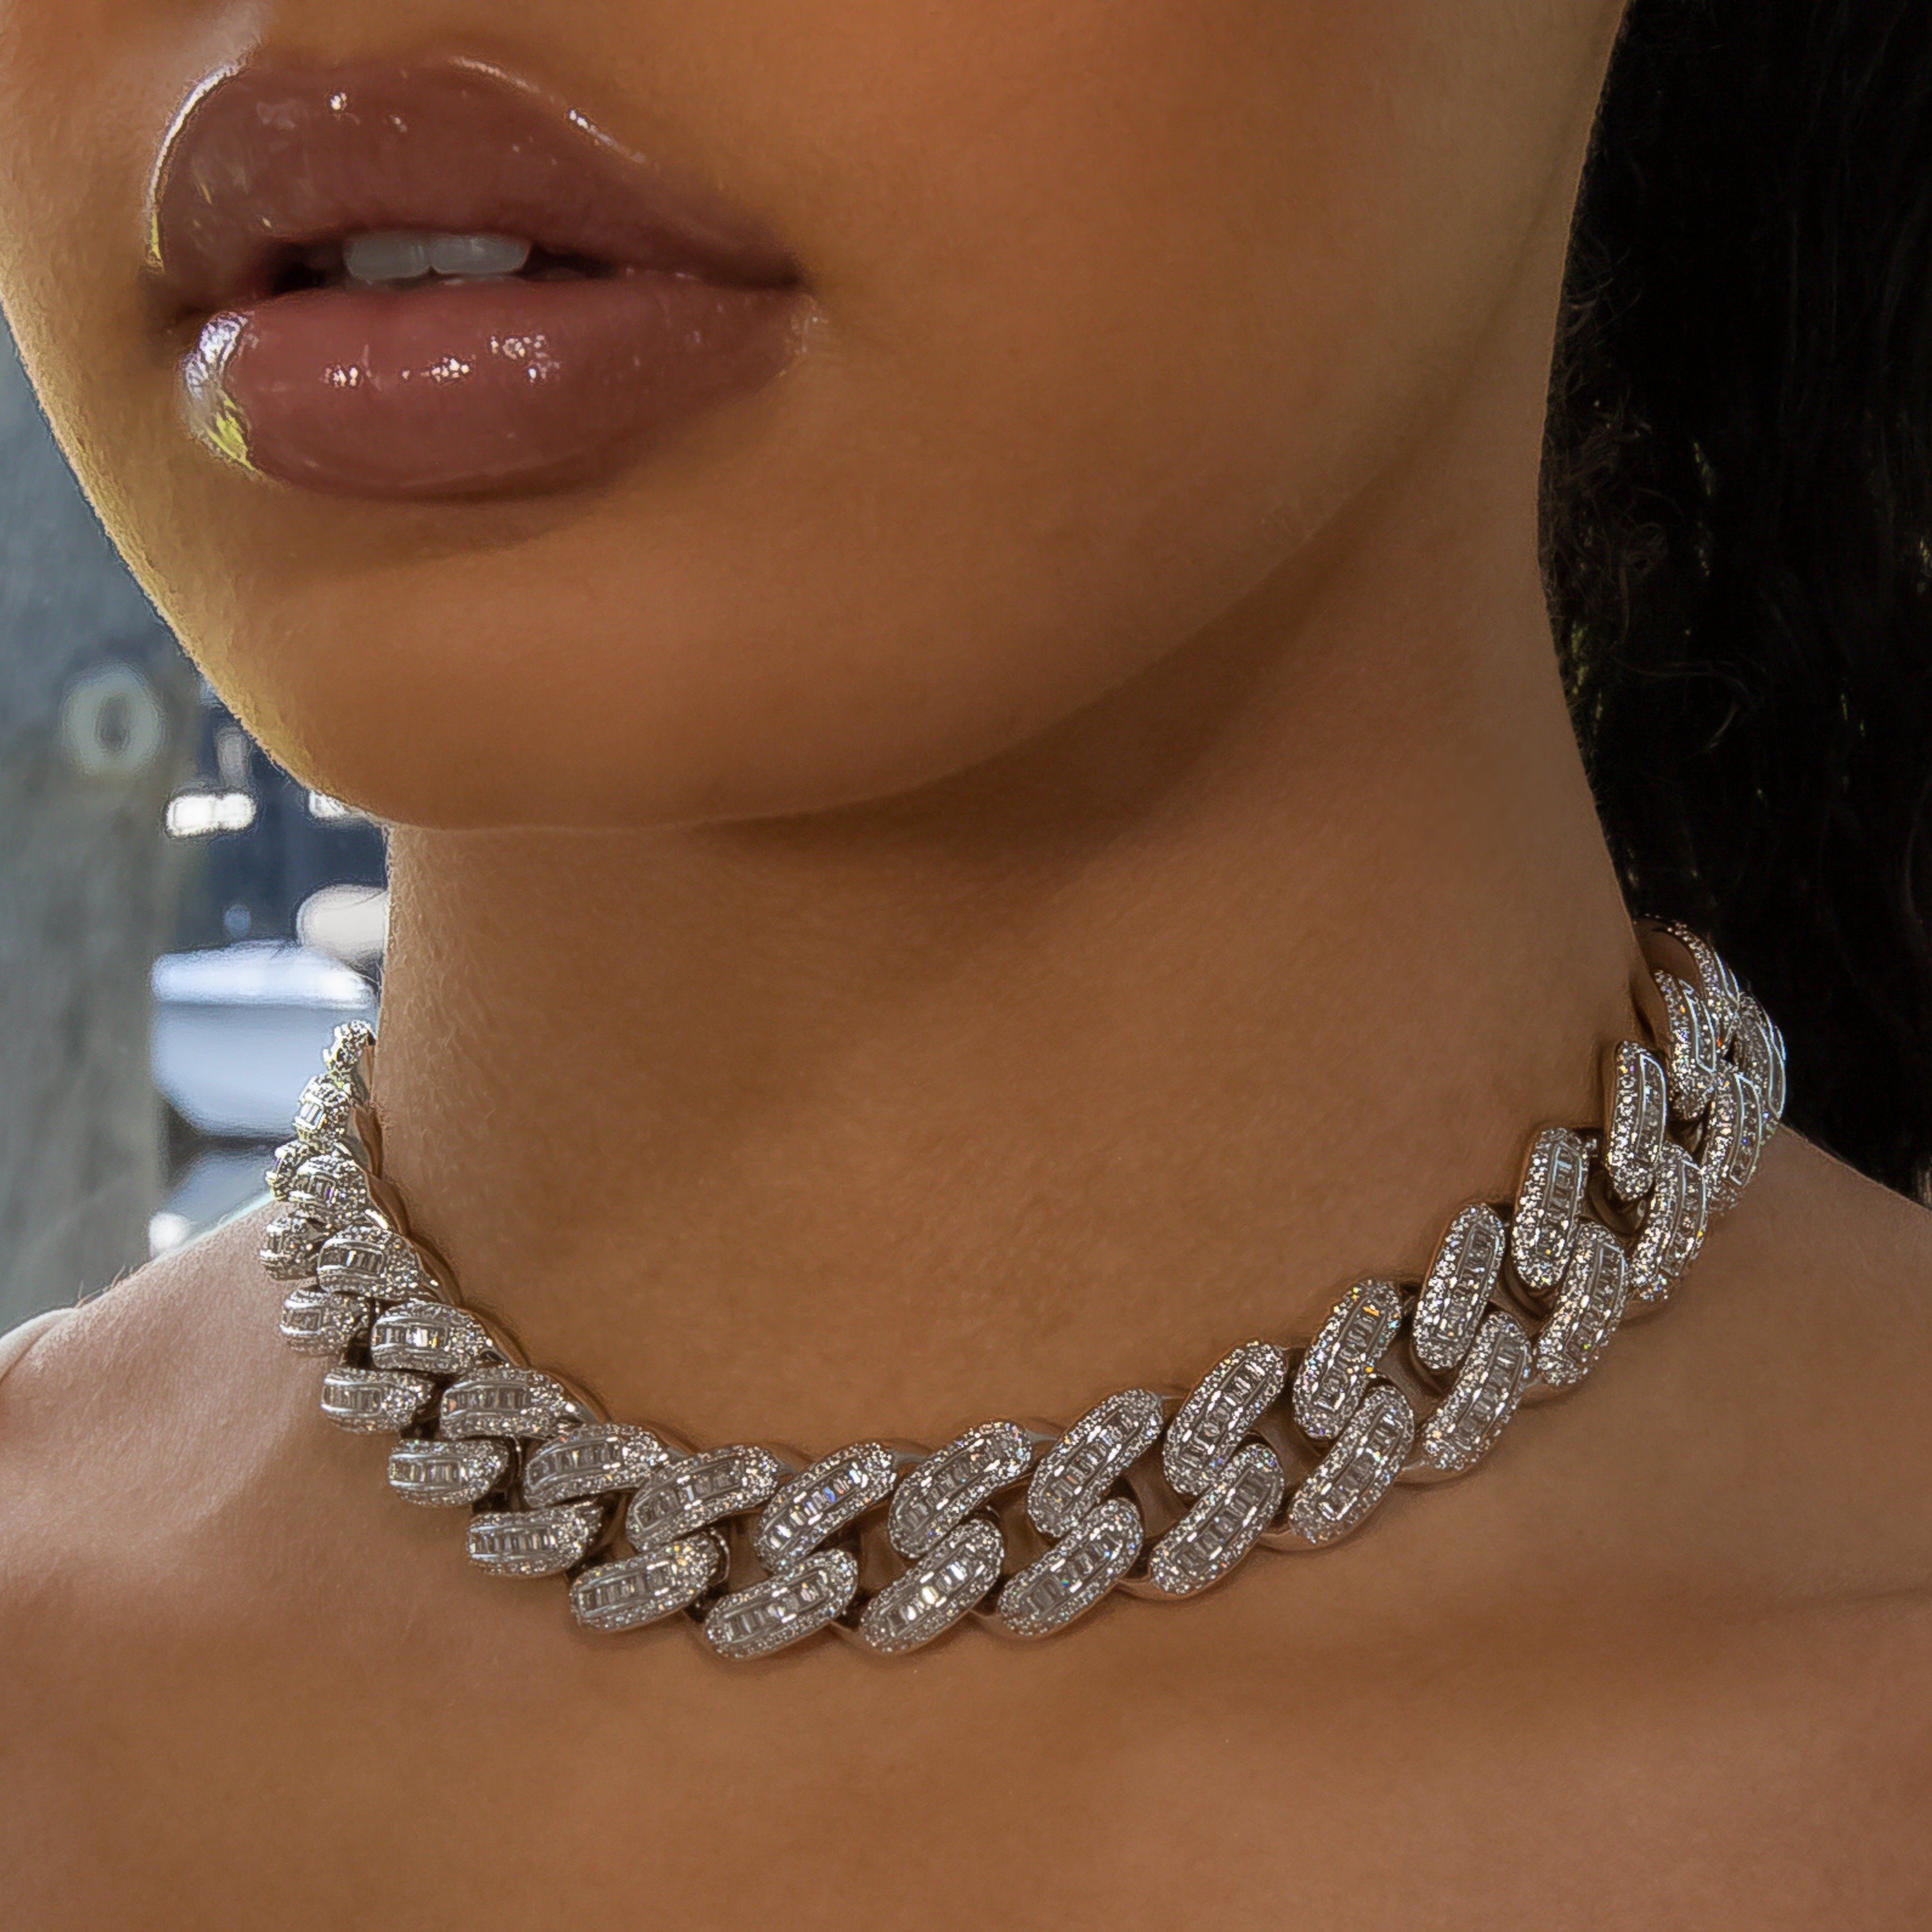 18mm White Gold Bugatti Link Necklace Girly Jewelry Expensive Jewelry Luxury Expensive Jewelry